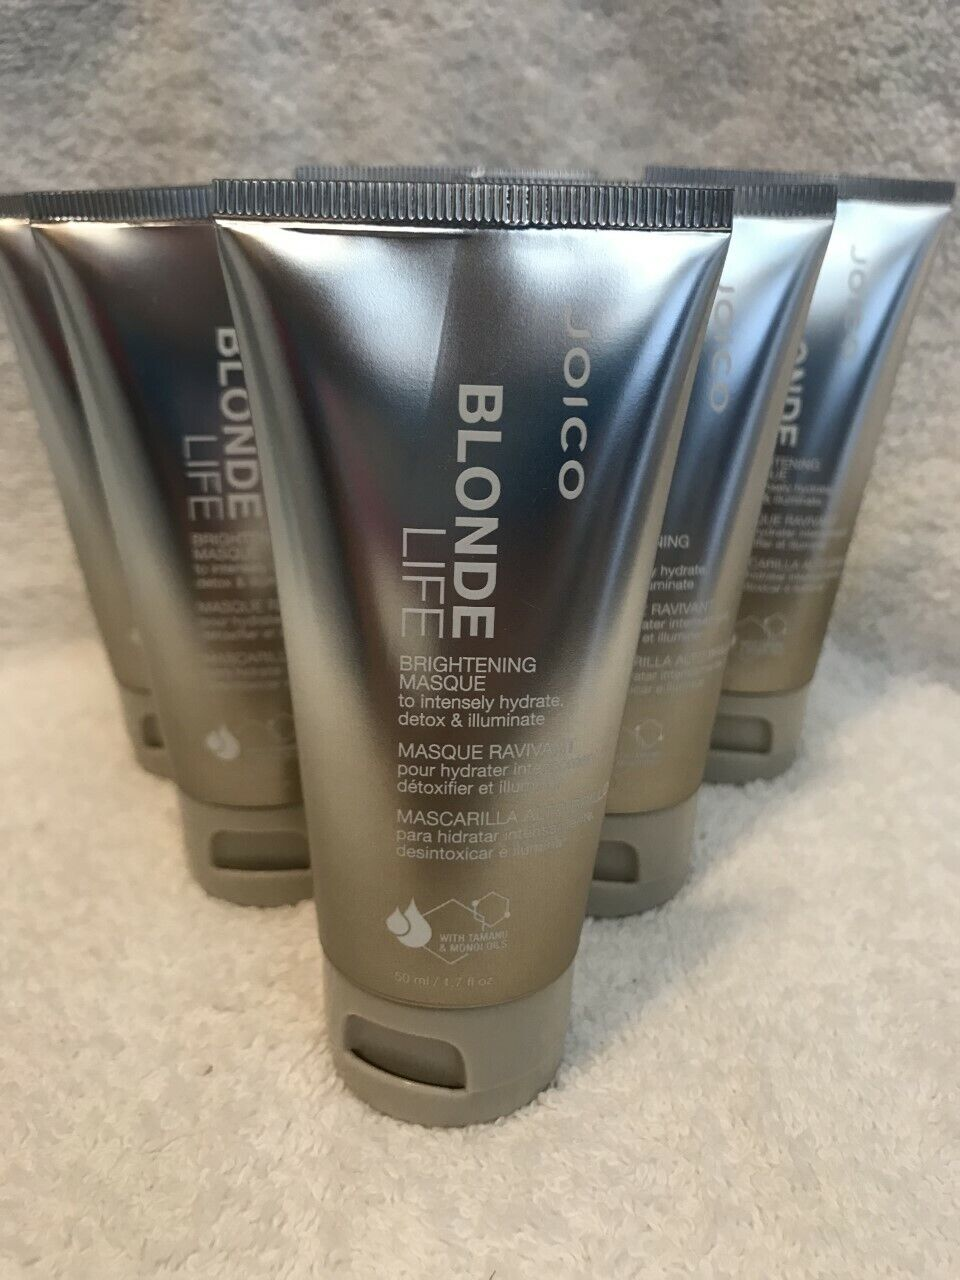 Joico Blonde Life Brightening Masque 1.7 fl oz / 50 ml